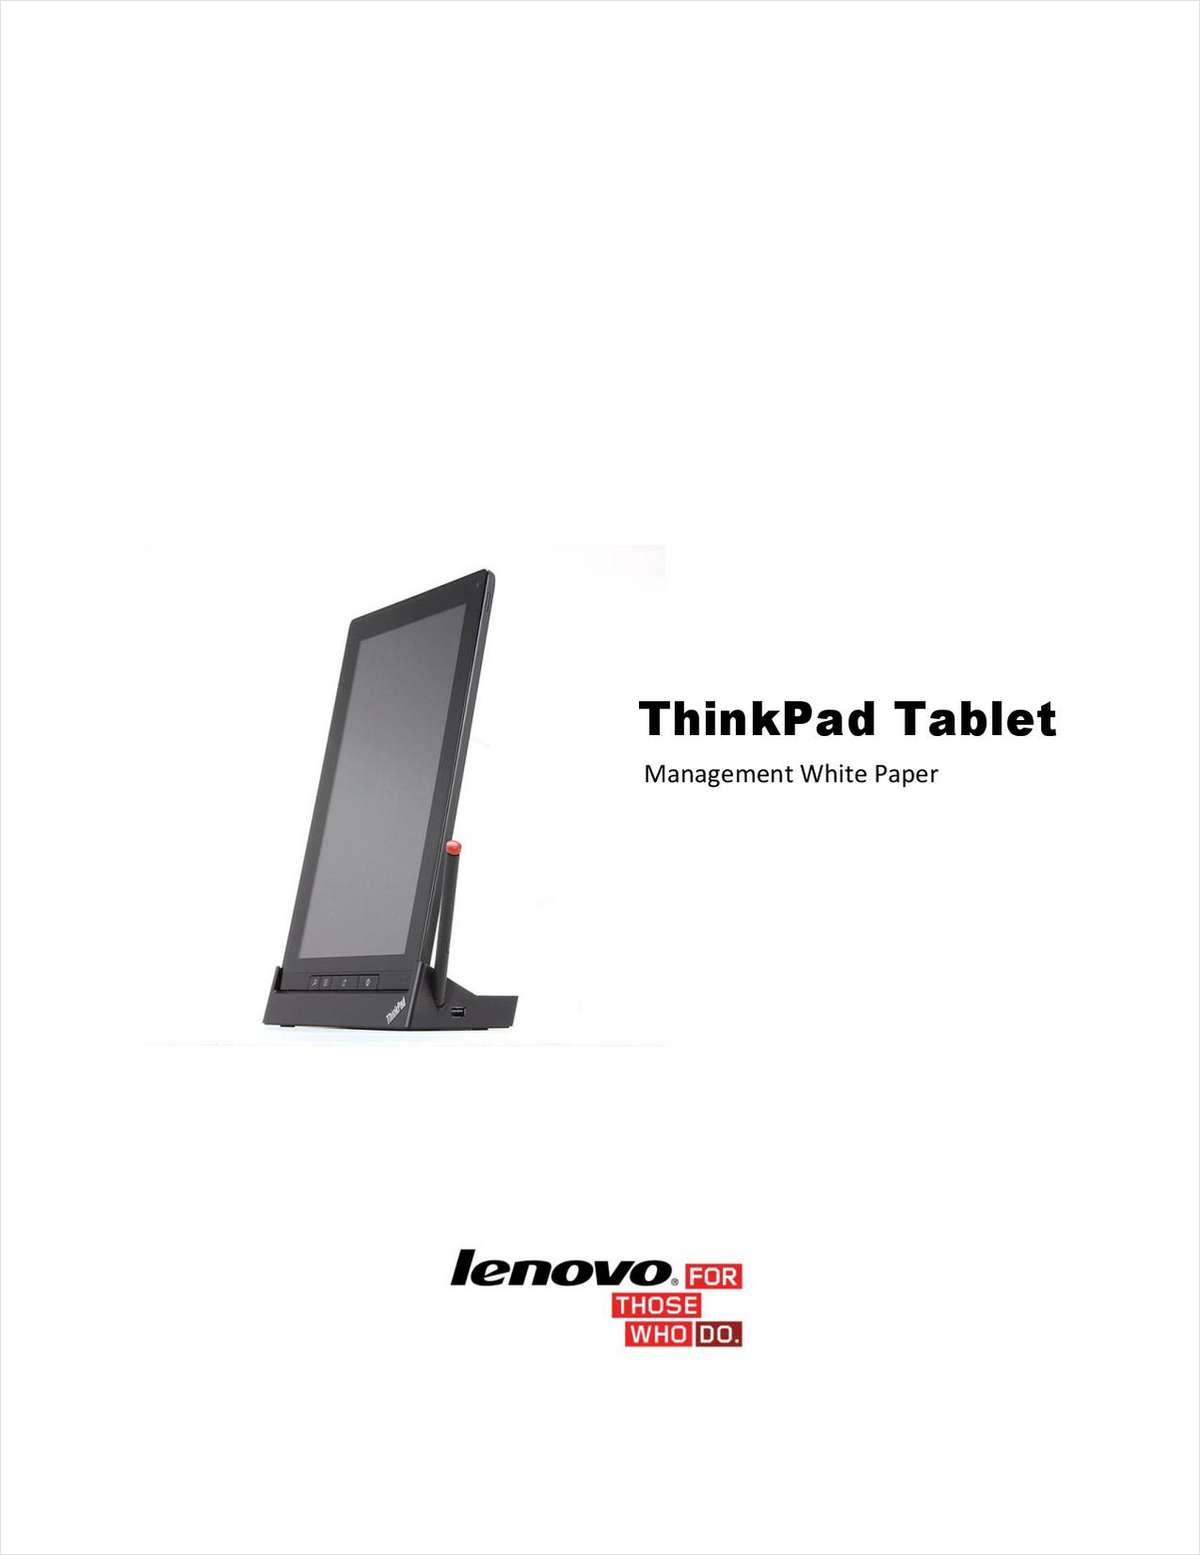 ThinkPad Tablet Management